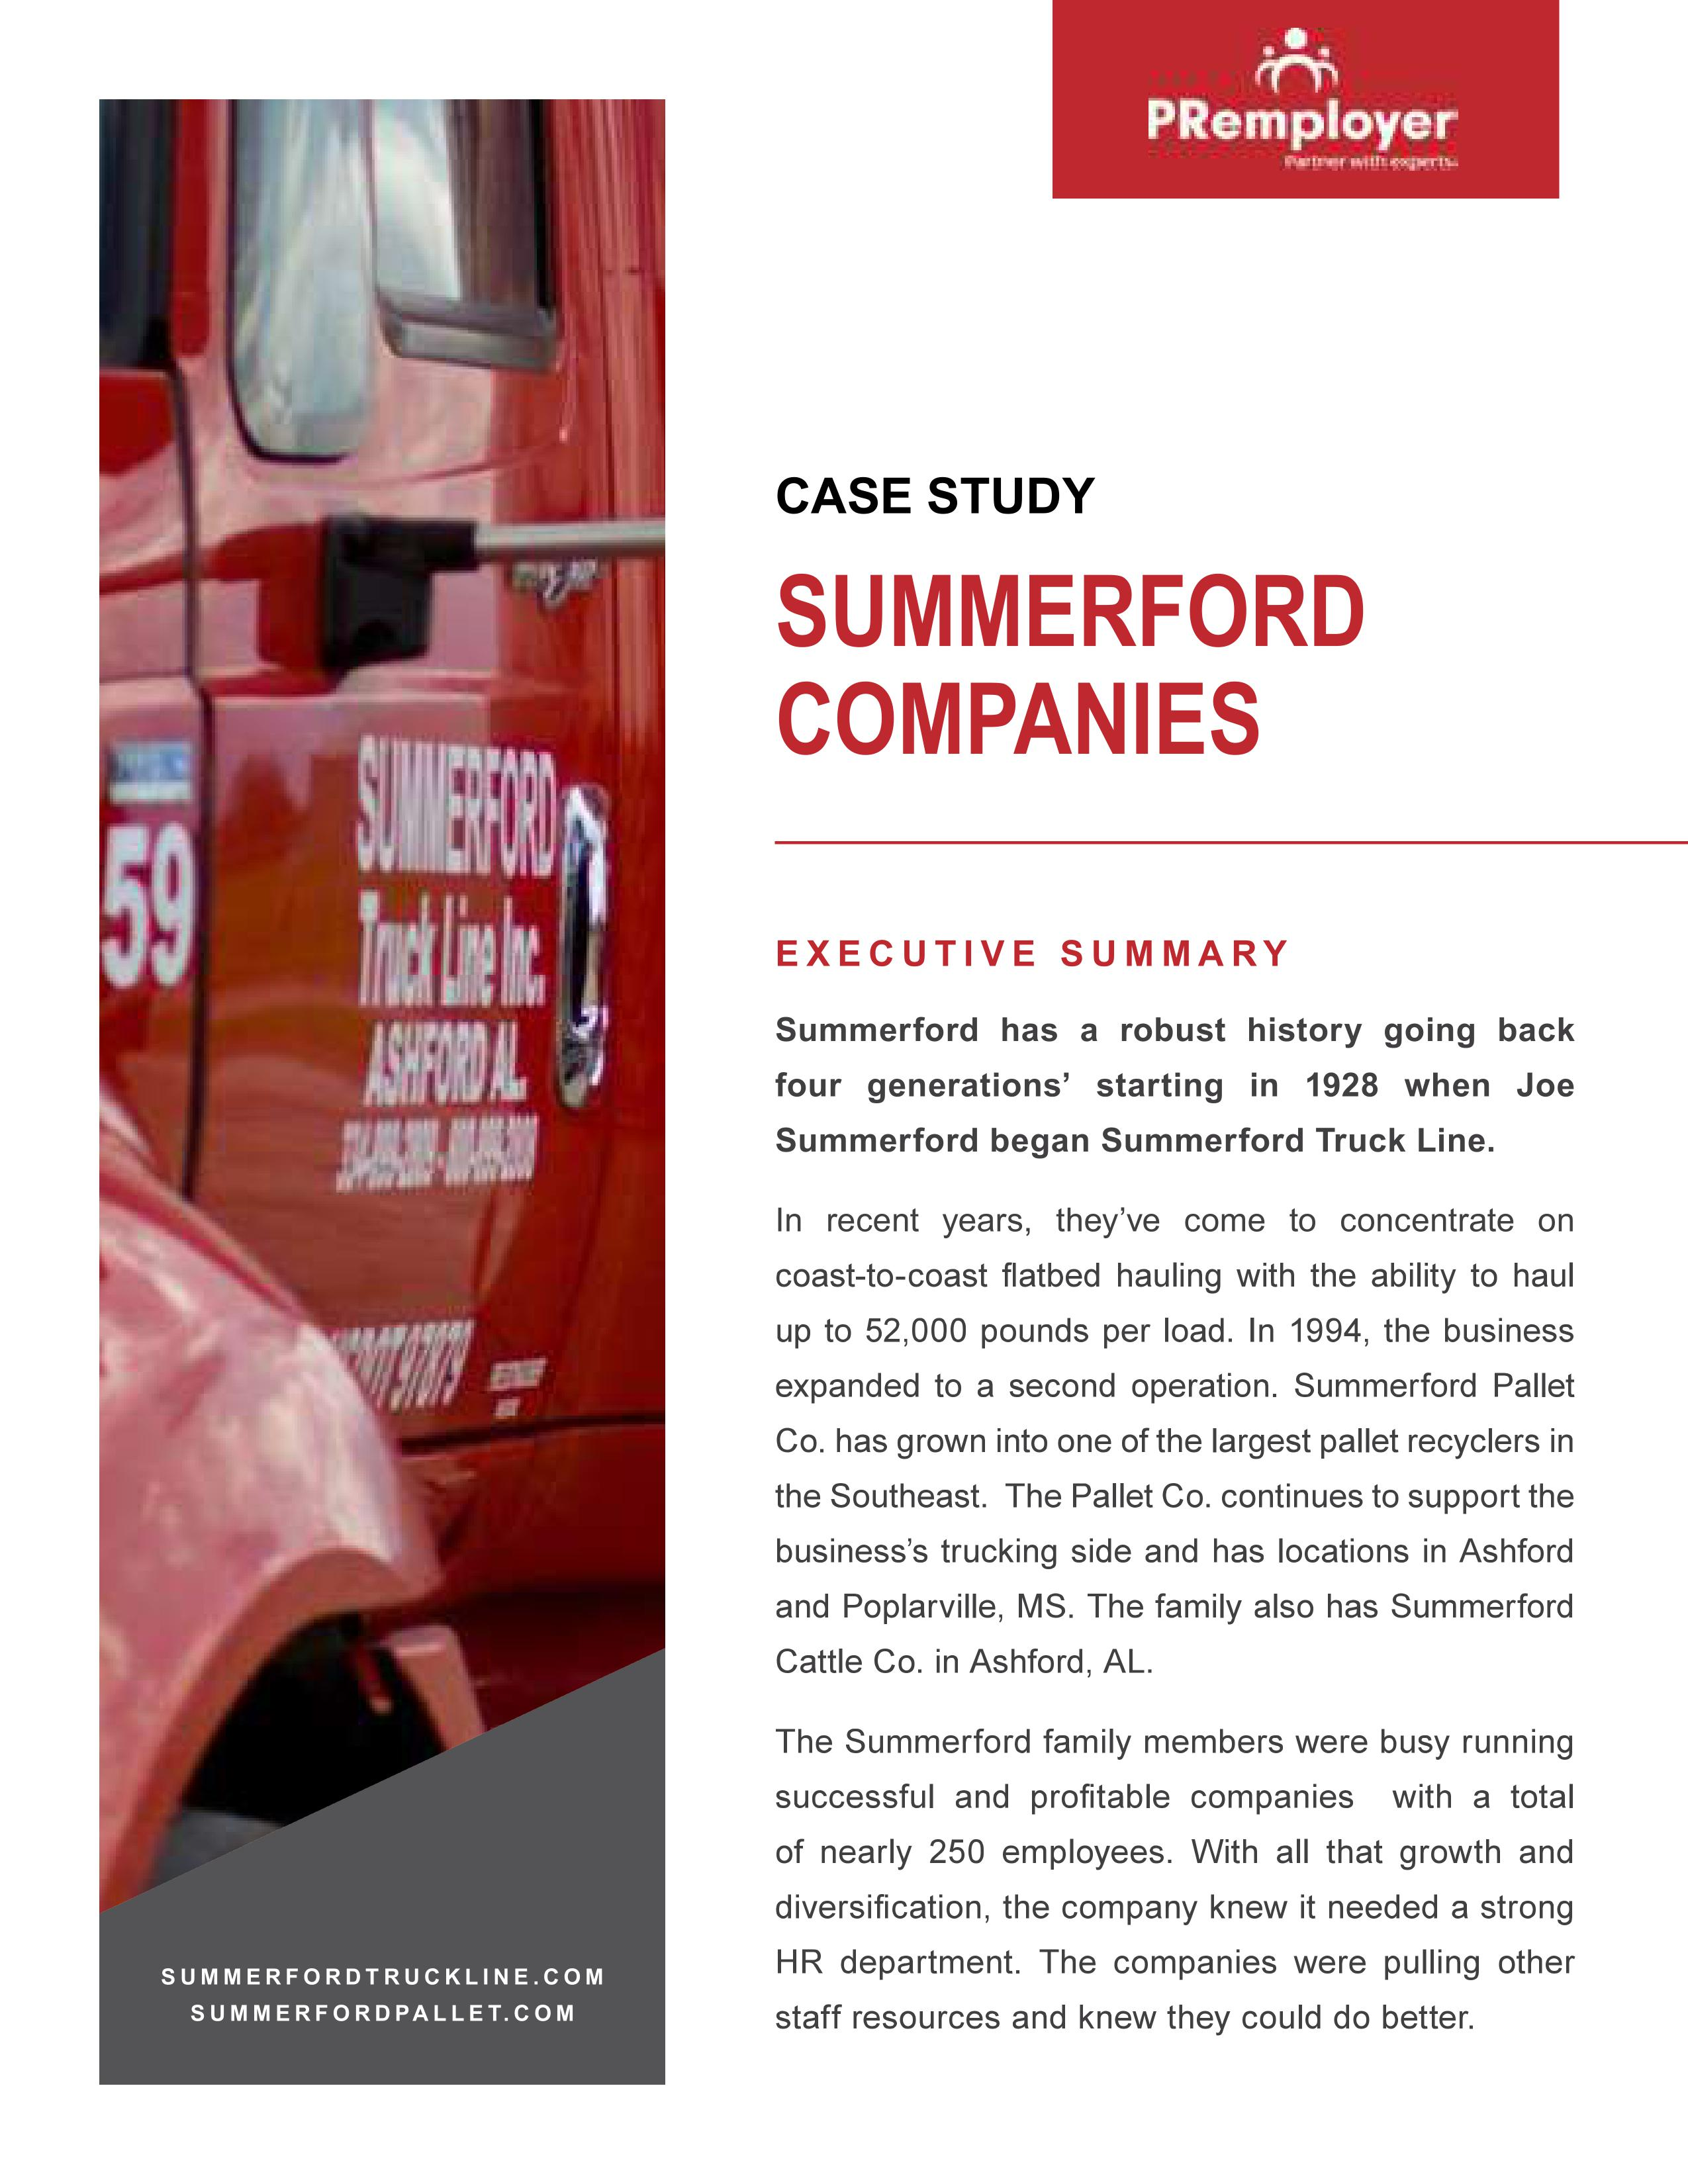 Summerford Case Study Cover photo